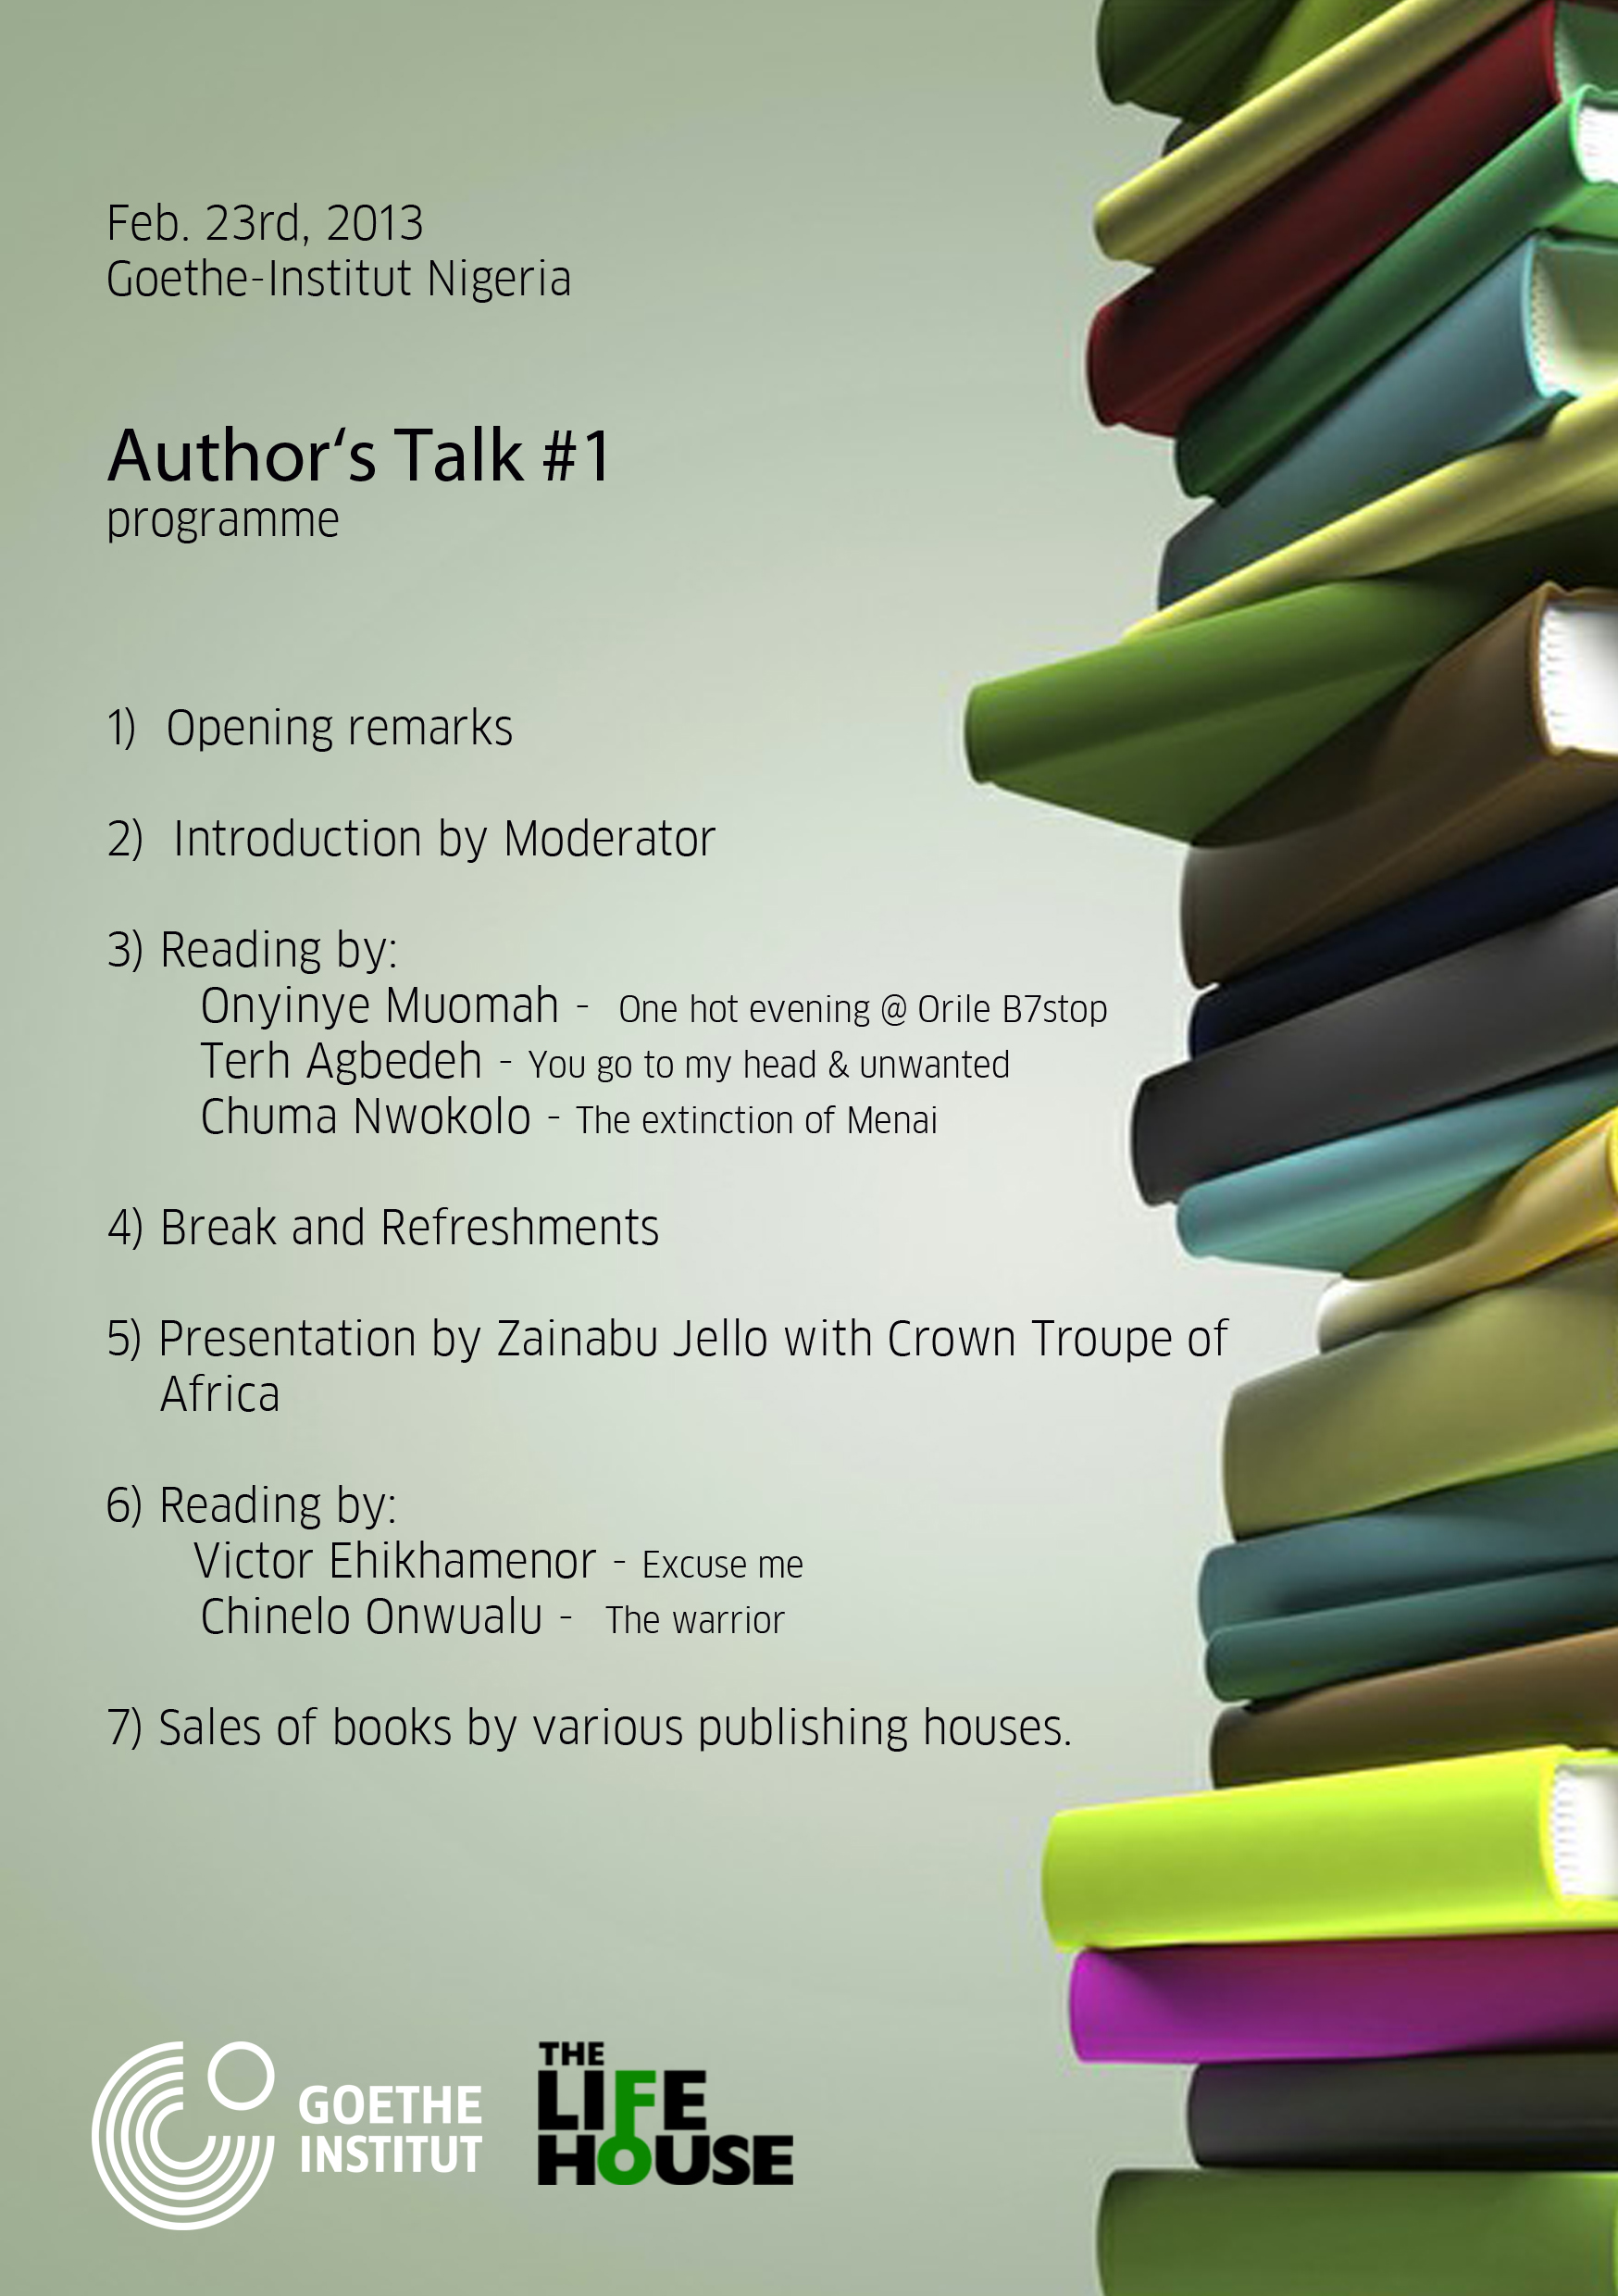 Goethe-Institut Nigeria, Author's Talk #1